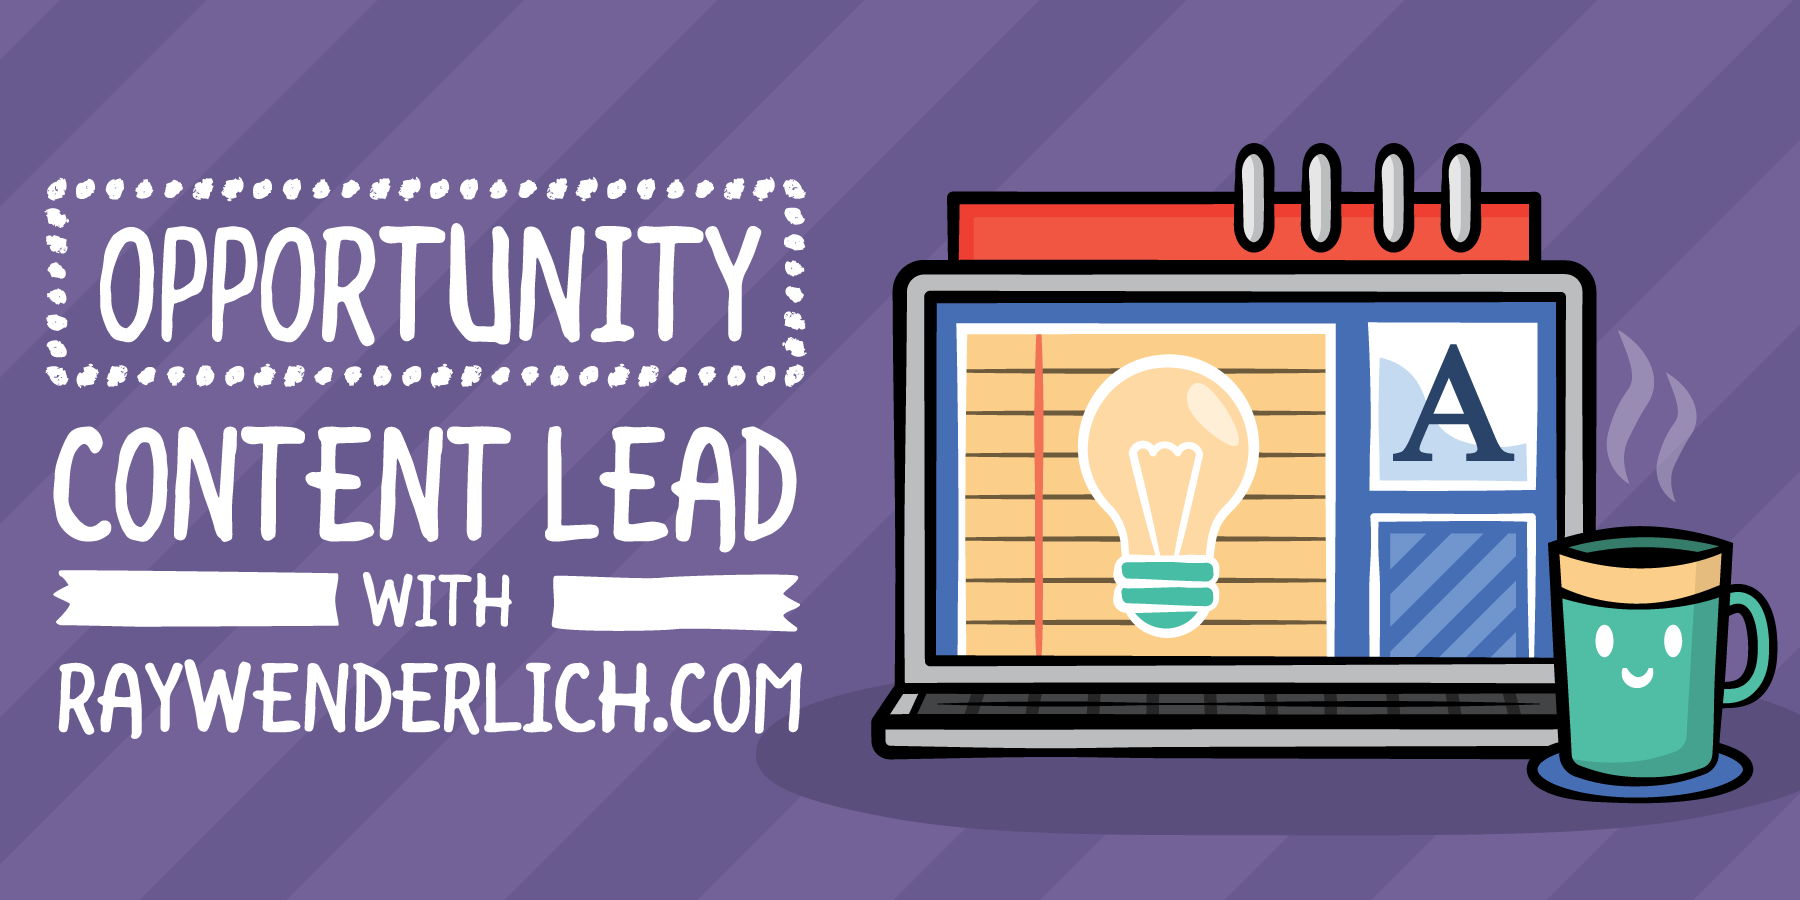 Opportunity: Content Lead at raywenderlich.com [FREE]